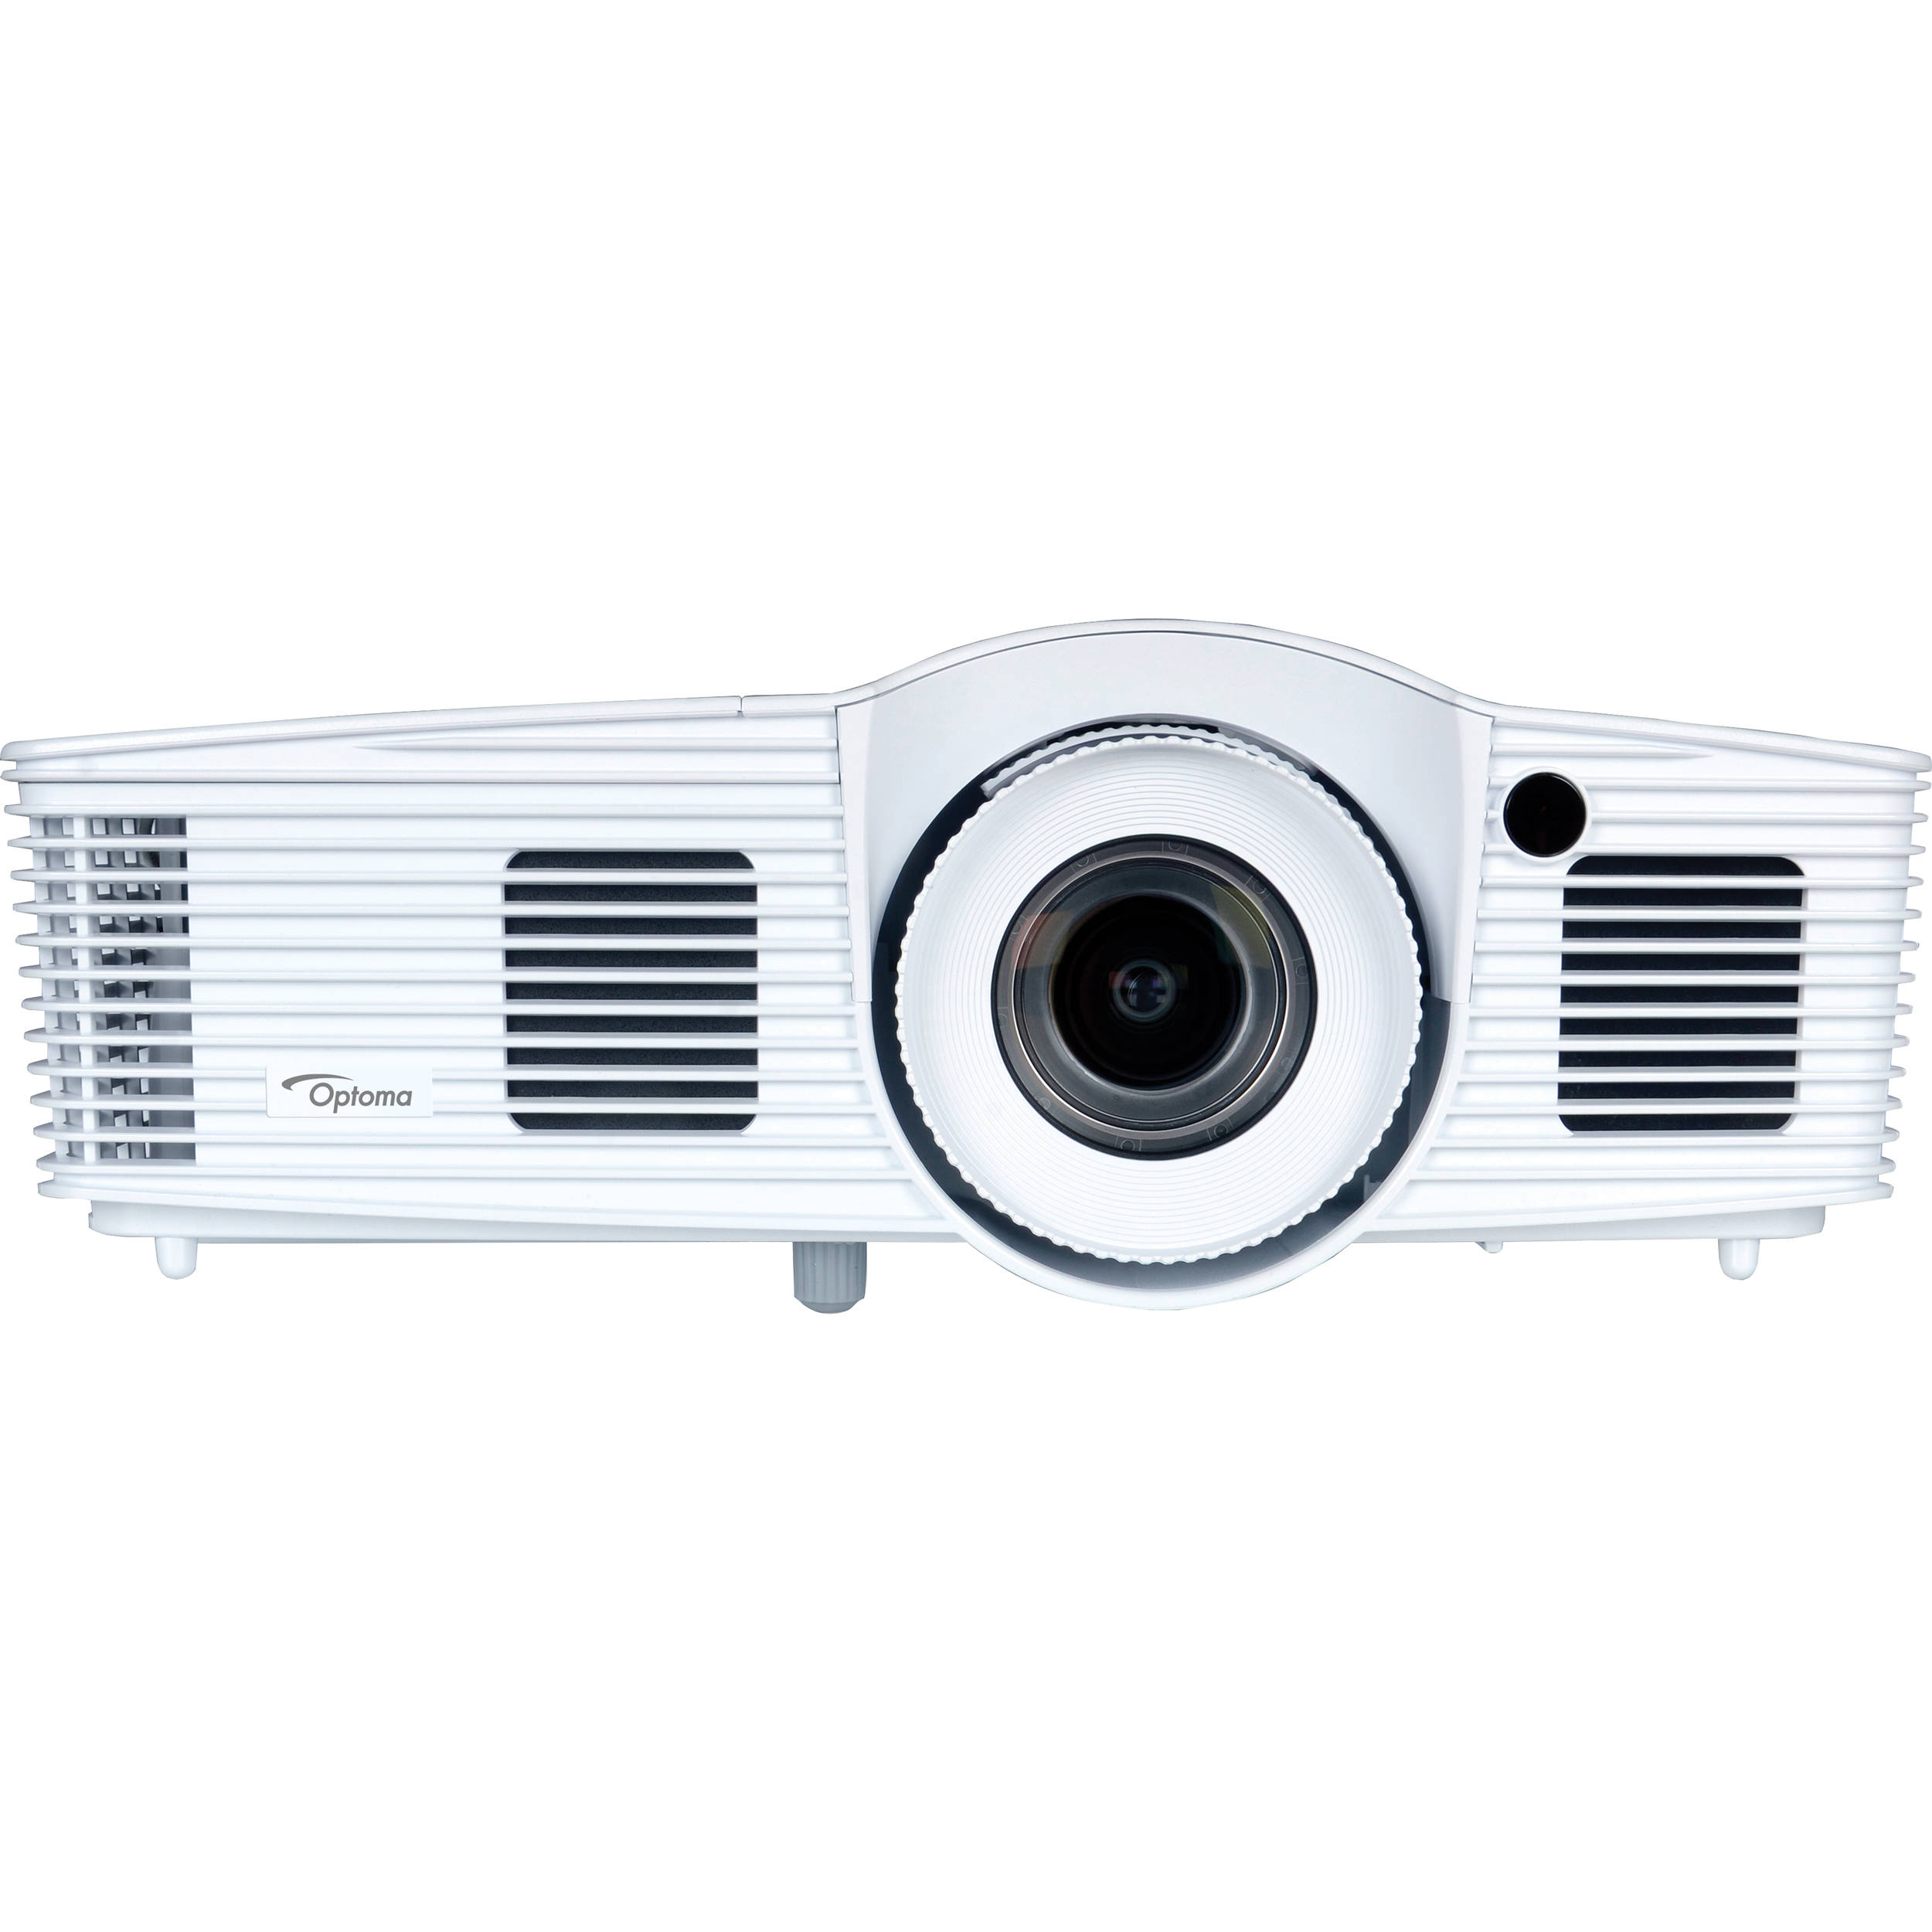 Optoma technology eh416 4200 lumen full hd dlp projector eh416 for Hd projector